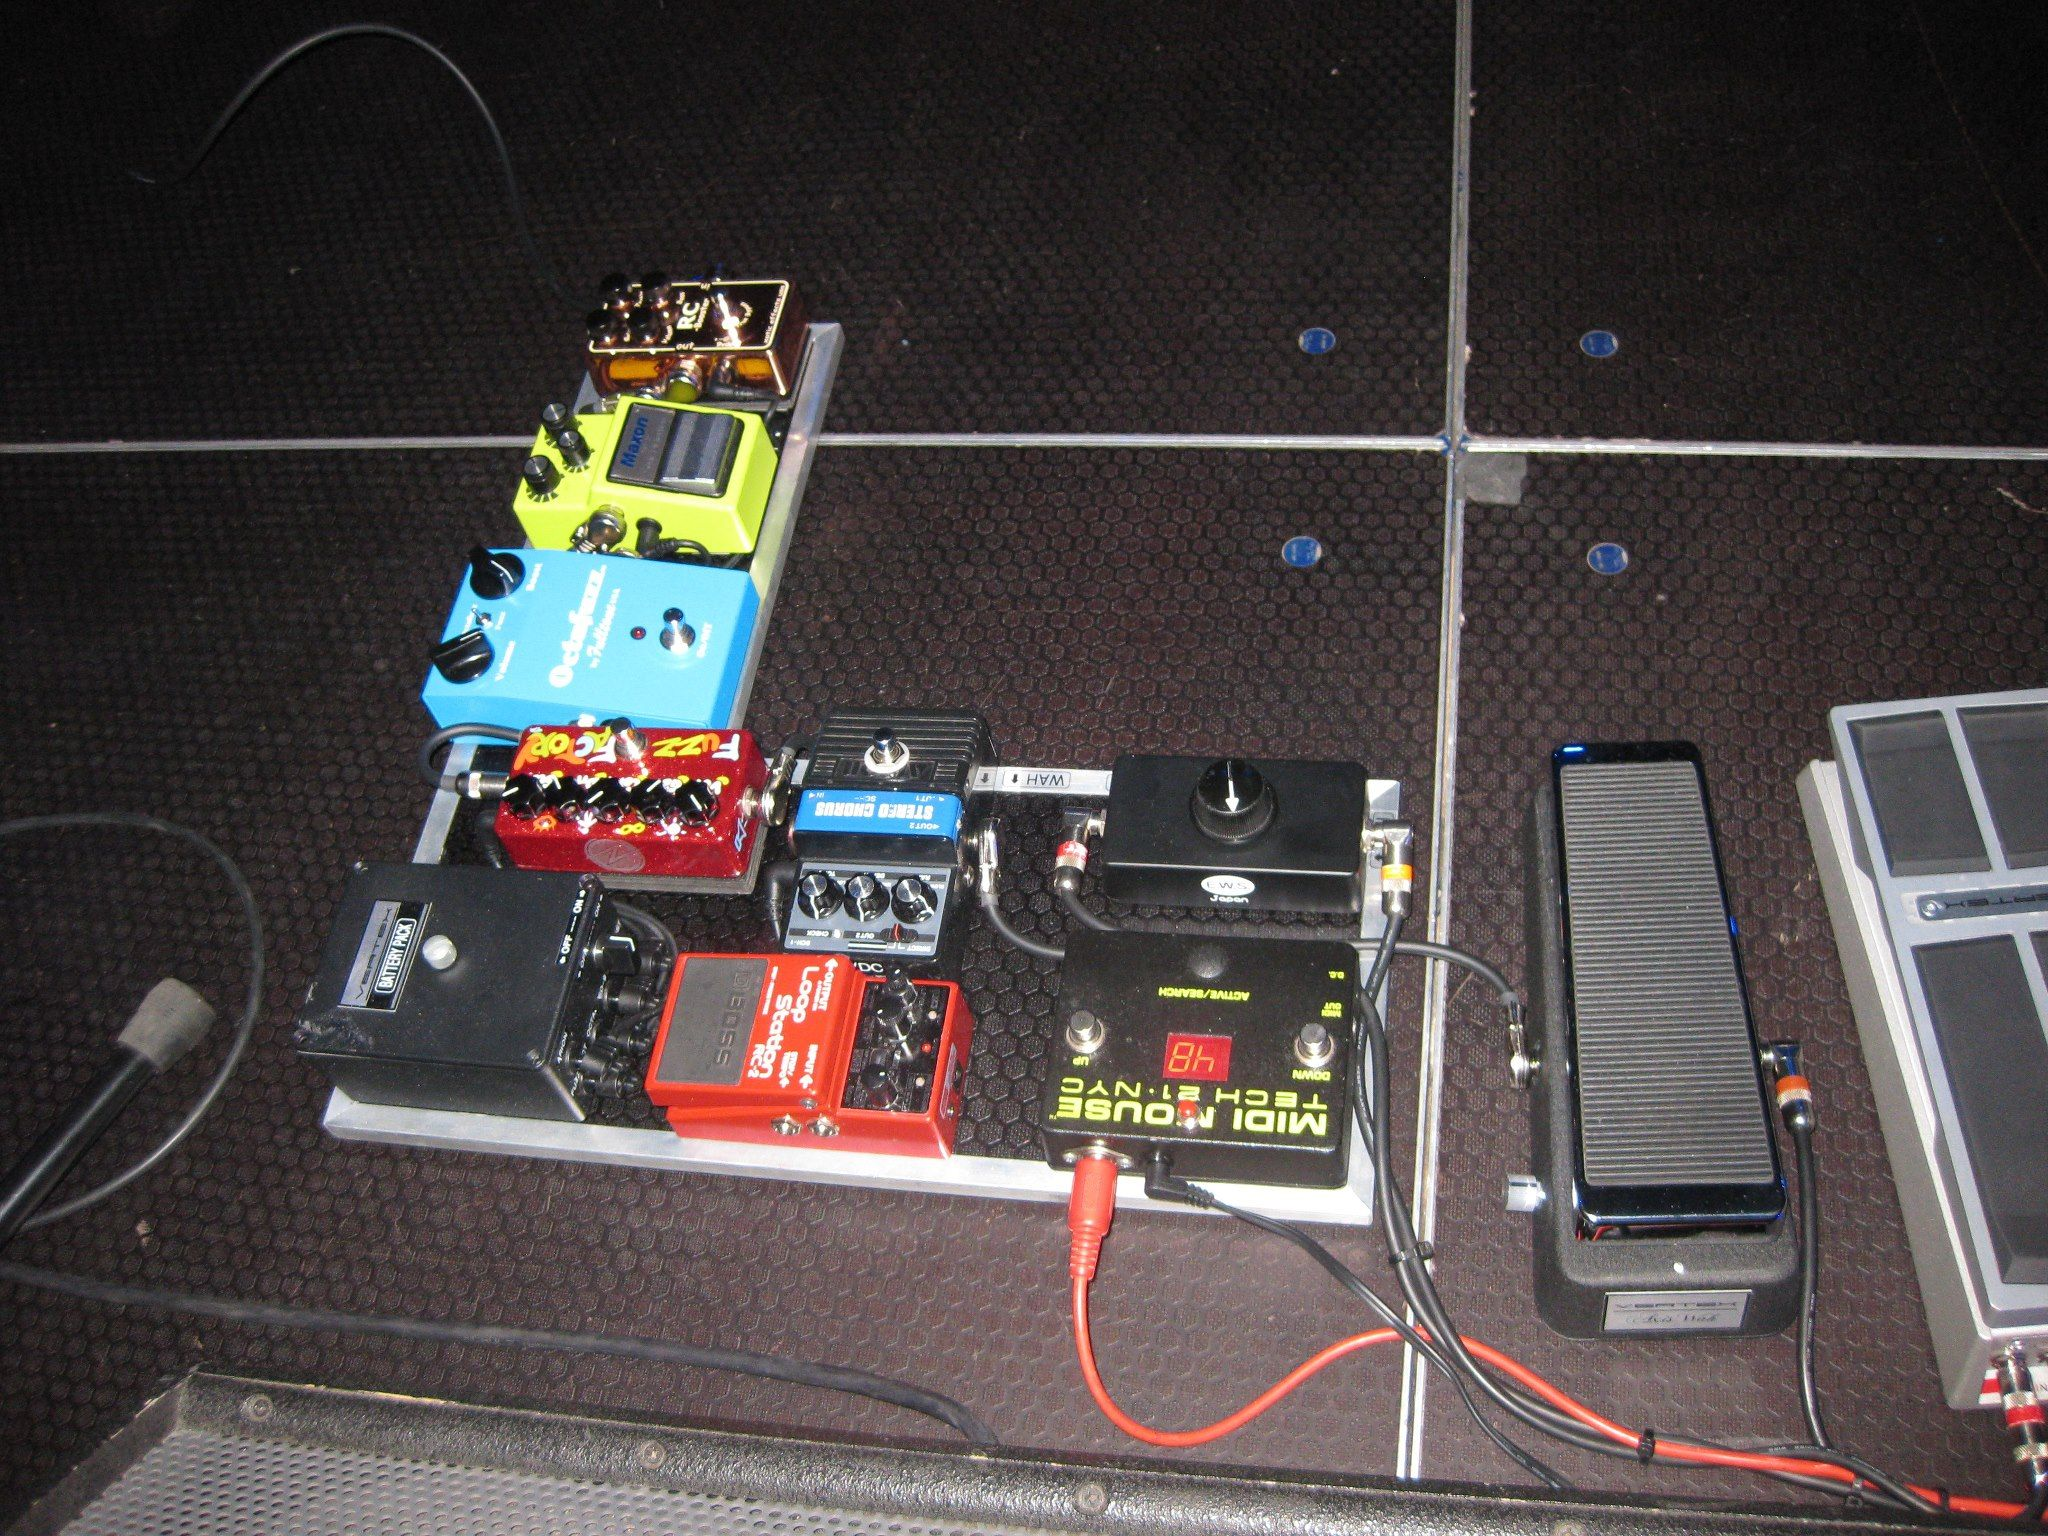 Scott Hendersons Rig With The Sh Volume Pedal Prototype Vertex 5039s And Modern Wiring Style Diagram From Http Wwwmylespaulcom Things I Love Lwren